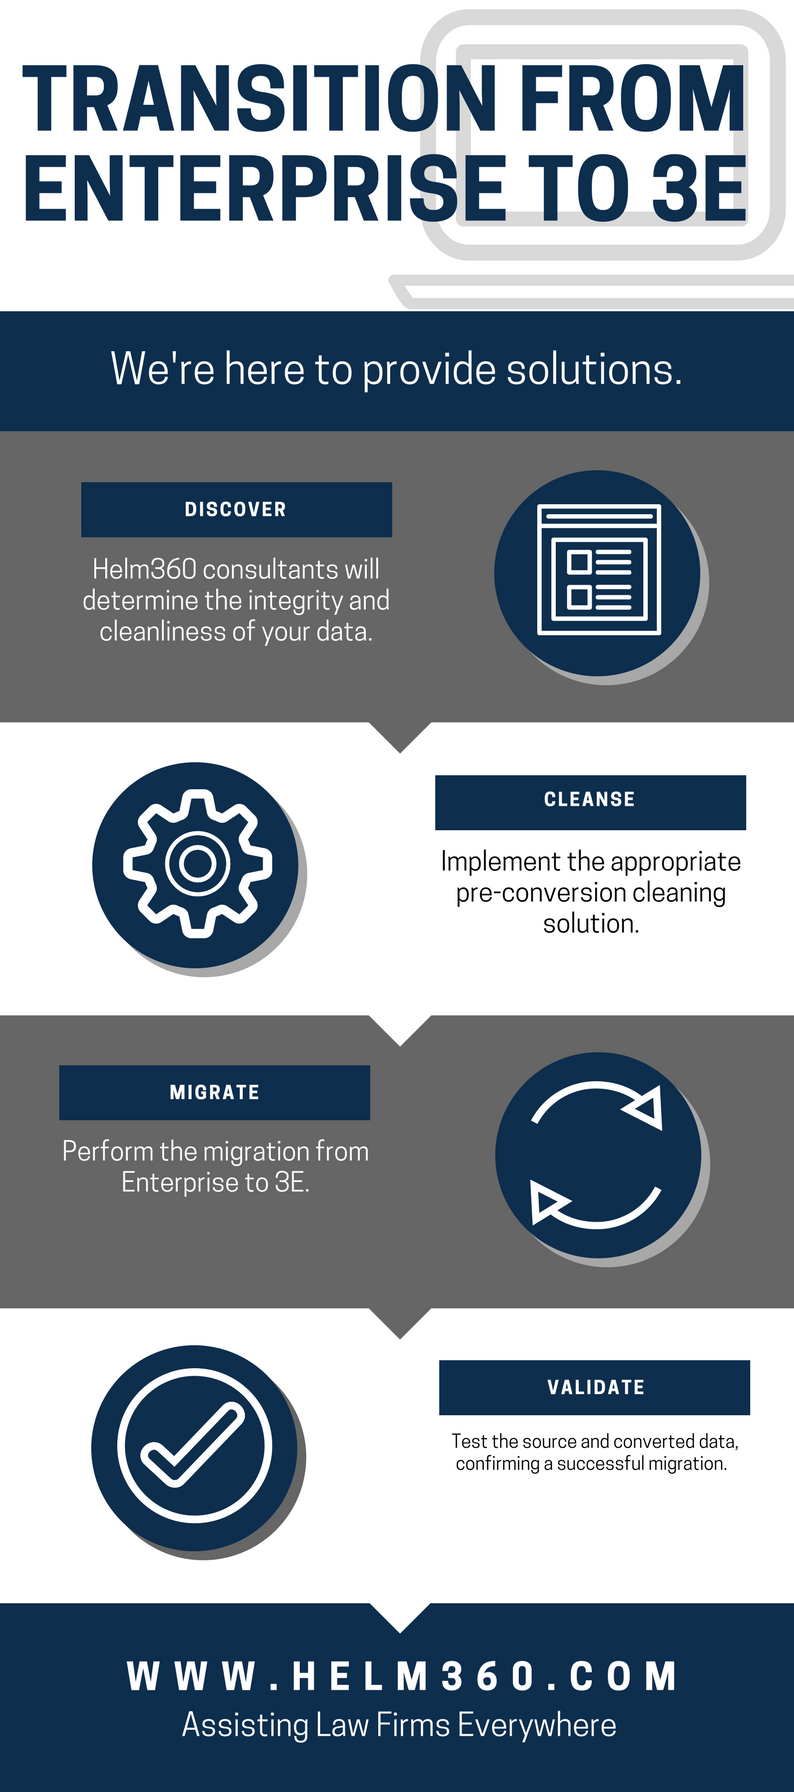 The transition from Enterprise to Elite 3E can be tough. Helm360 is here to provide an easy solution in the form of our four-step process. In step one, discover, Helm360 consultants will determine the integrity and cleanliness of your data. In step 2, cleanse, we implement the appropriate pre-conversion cleaning solution for your firm. In step 3, migrate, Helm360 will perform the migration from Enterprise to Elite 3E for you. Finally, in step 4, validate, Helm360 consultants will test the source and converted data, confirming that your firm's migration has been successful. Contact us today for help with this transition!